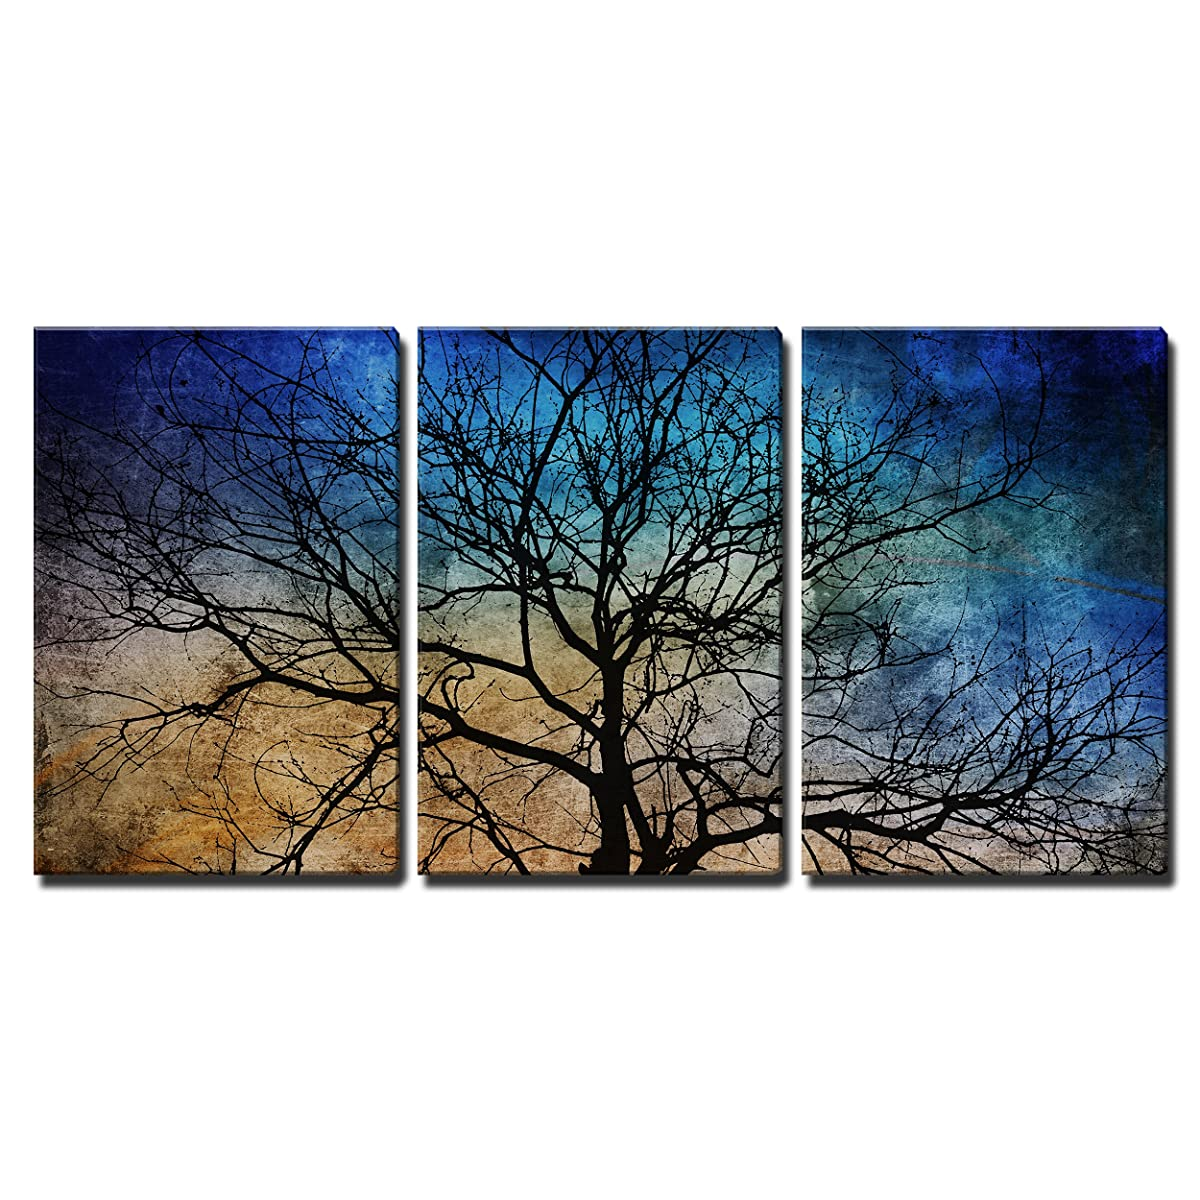 """wall26 3 Piece Canvas Wall Art - Black Tree Branches on Abstract Colorful Background - Modern Home Decor Stretched and Framed Ready to Hang - 16""""x24""""x3 Panels"""